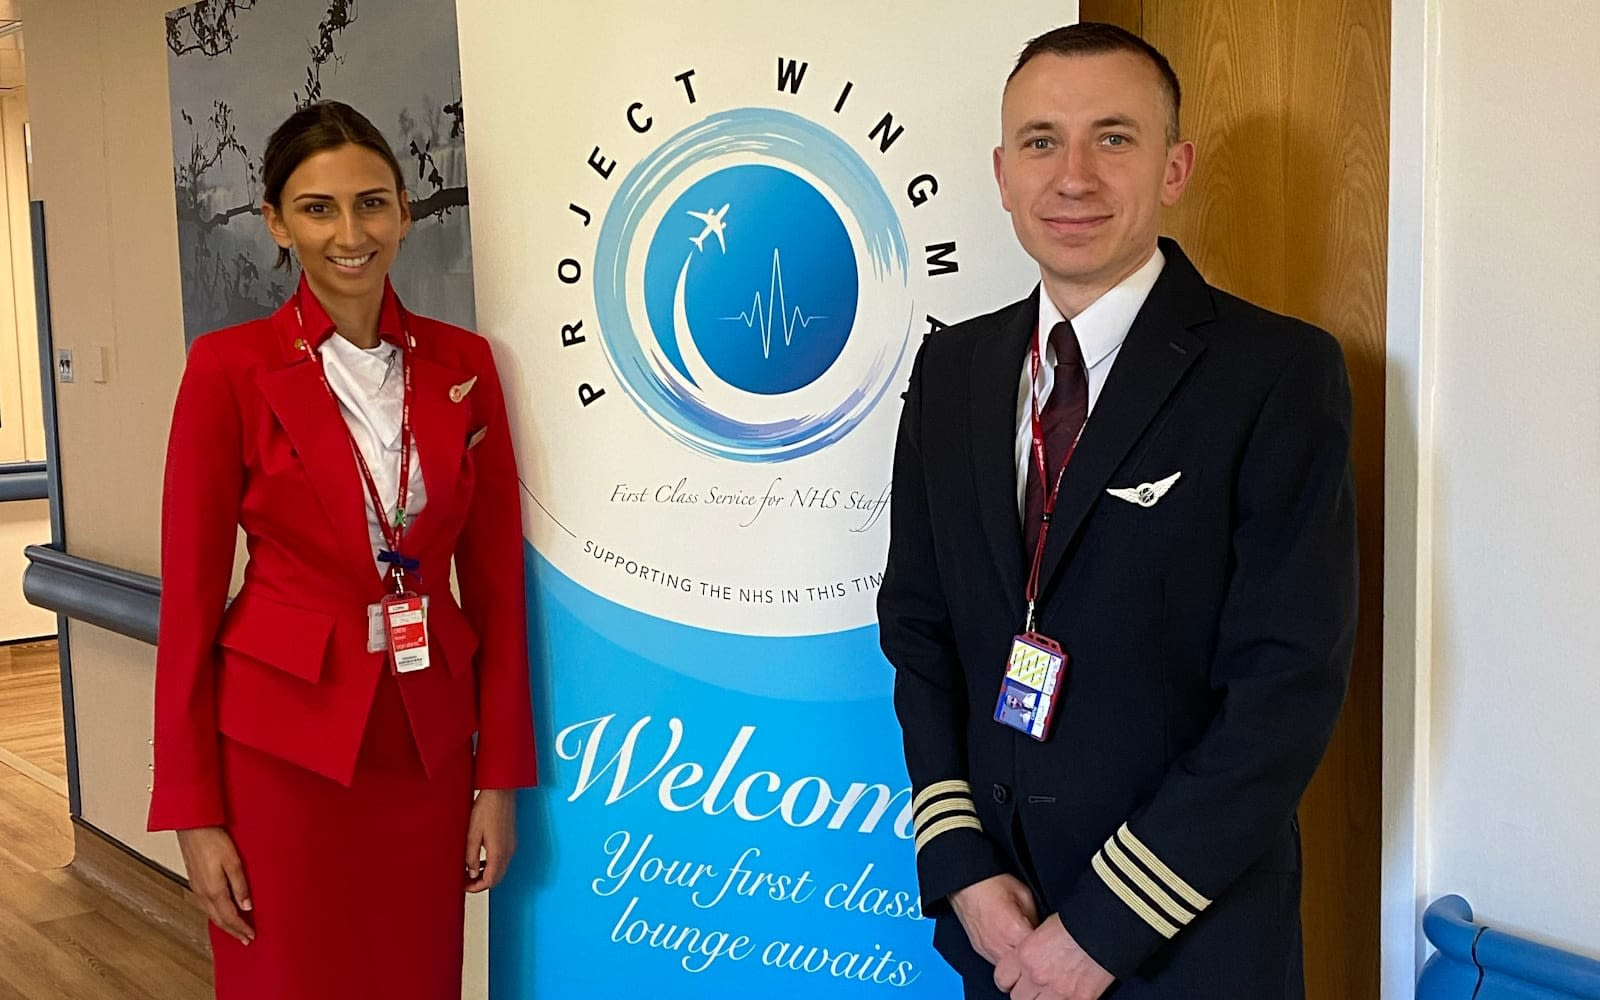 Virgin Atlantic crew stand beside an upright Project Wingman welcome poster